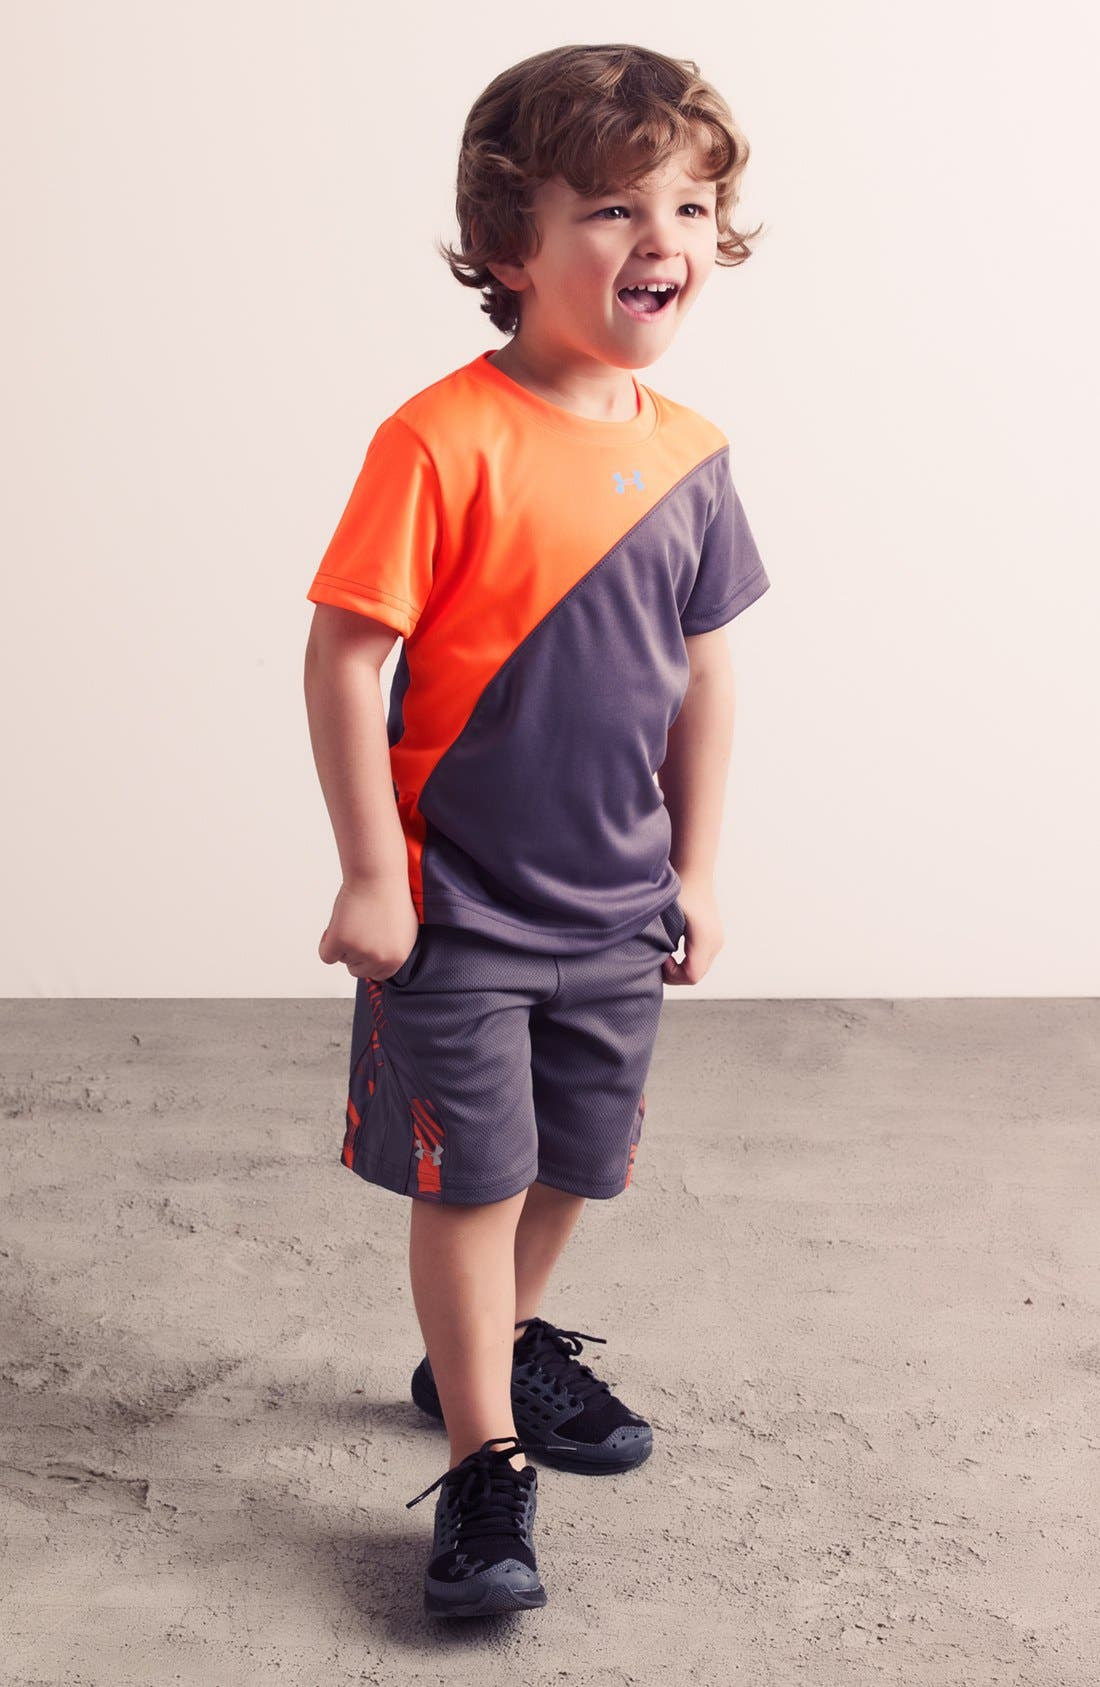 Main Image - Under Armour T-Shirt, Shorts & Sneaker (Toddler)